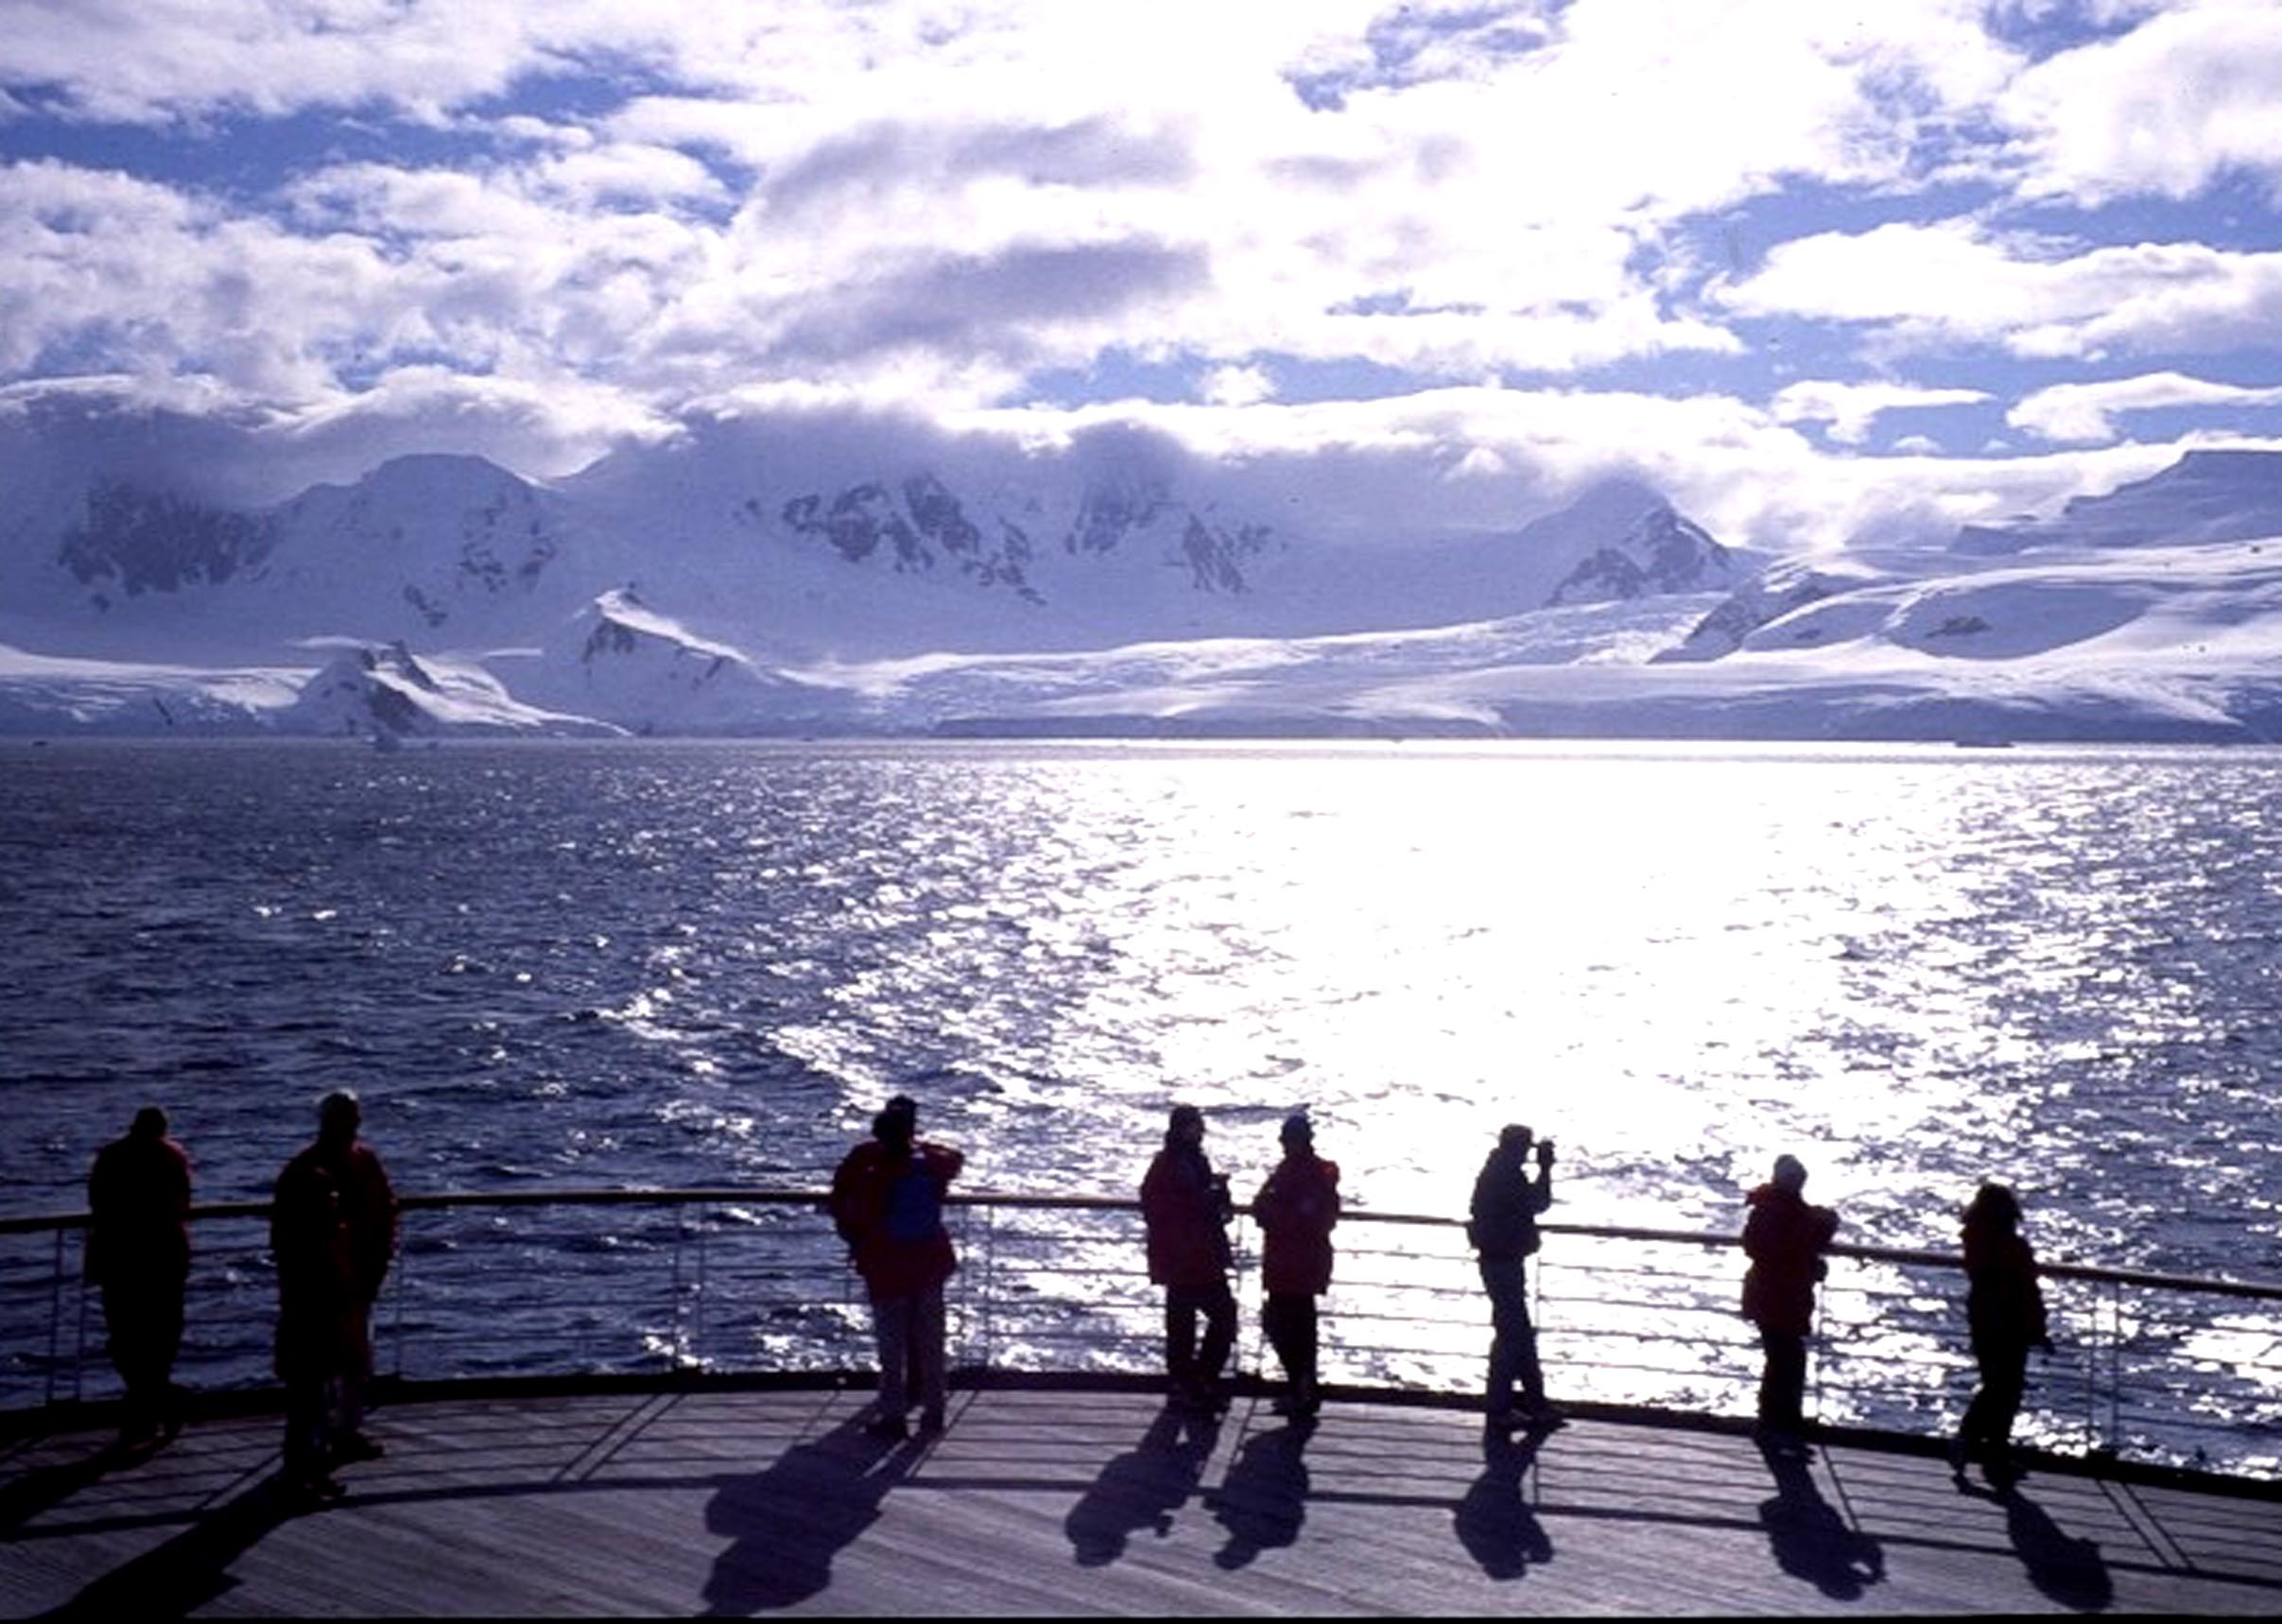 People on the deck of a ship looking at snowy coastline